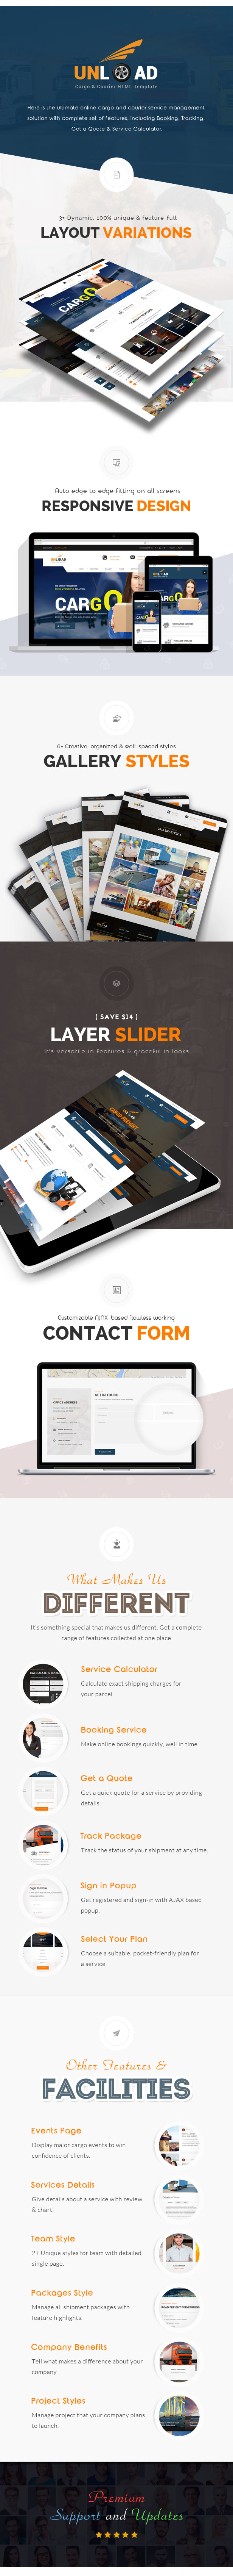 Unload - Cargo, Shipping, Warehouse & Transport HTML5 Responsive ...